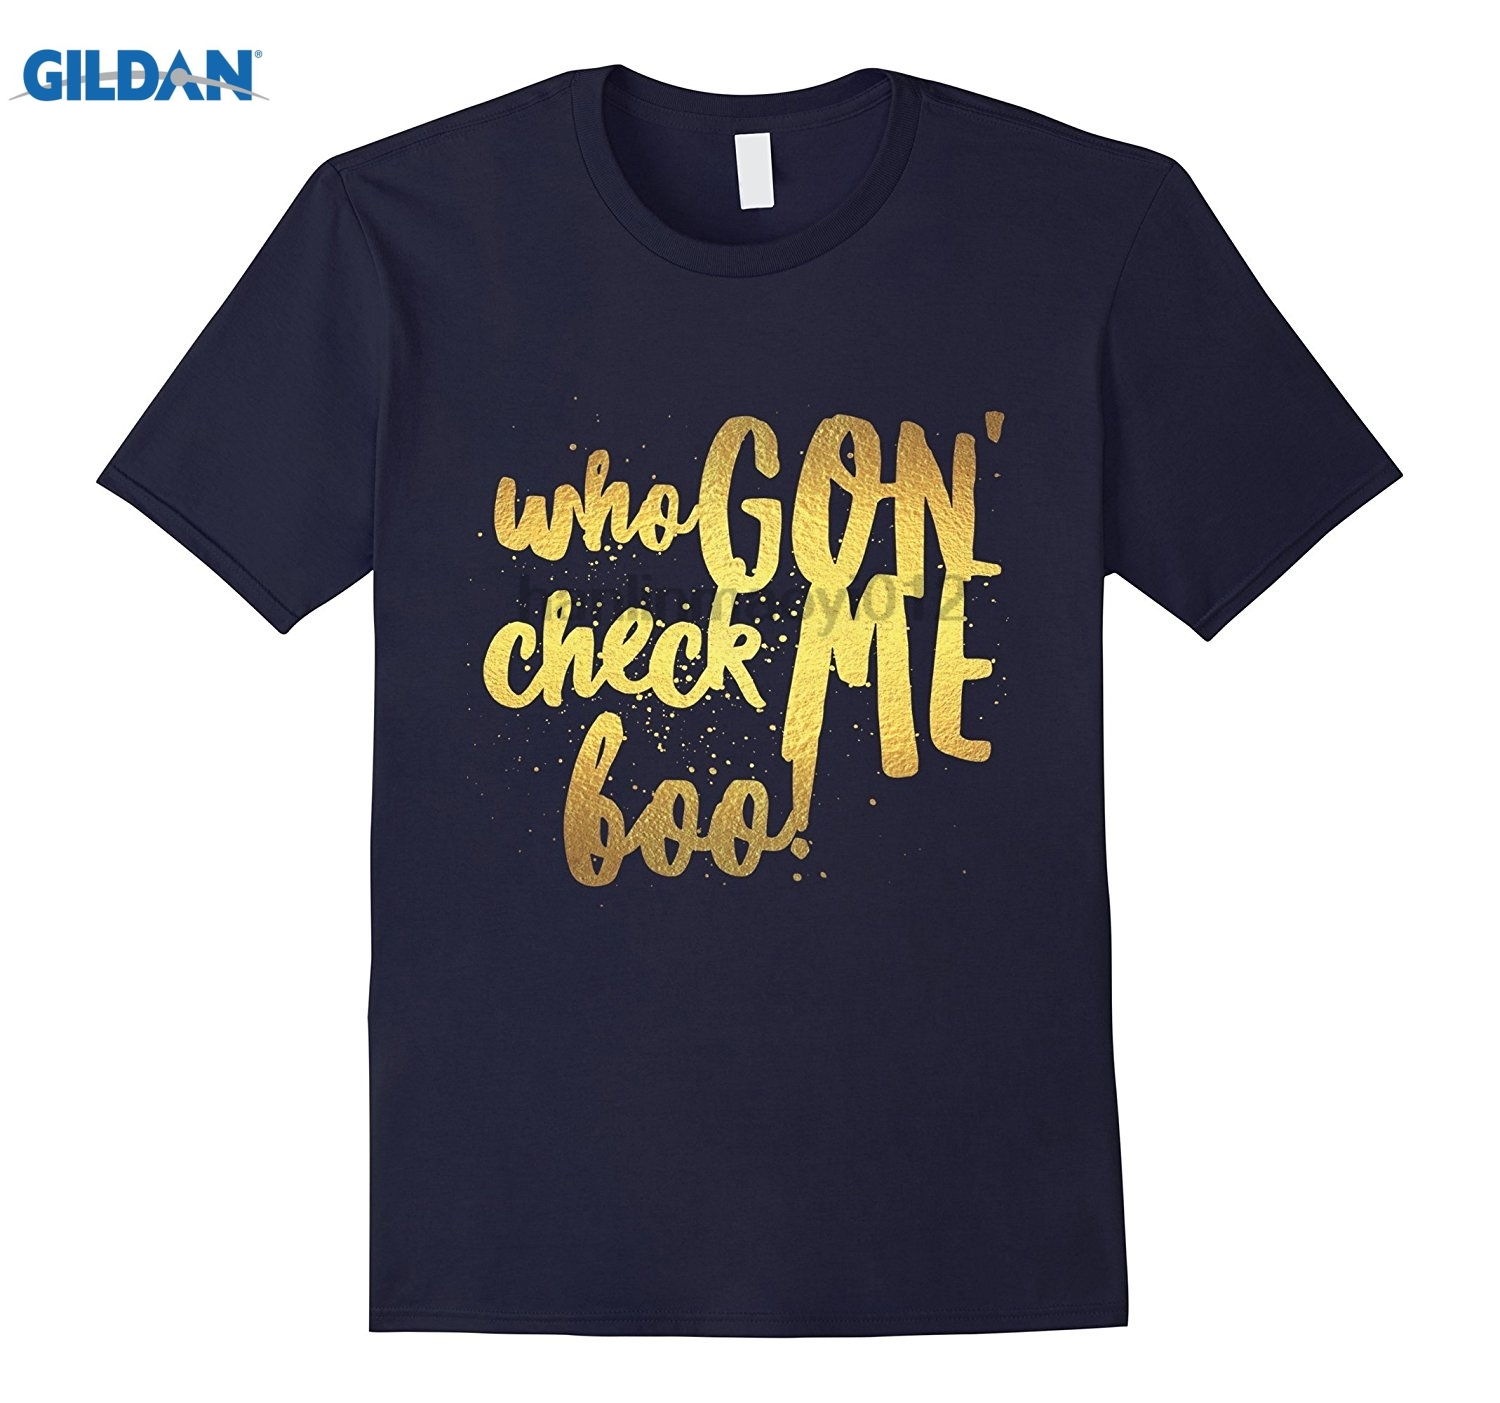 GILDAN Trending bling Who gon get me boo in gold t-shirt Hot Womens T-shirt ...